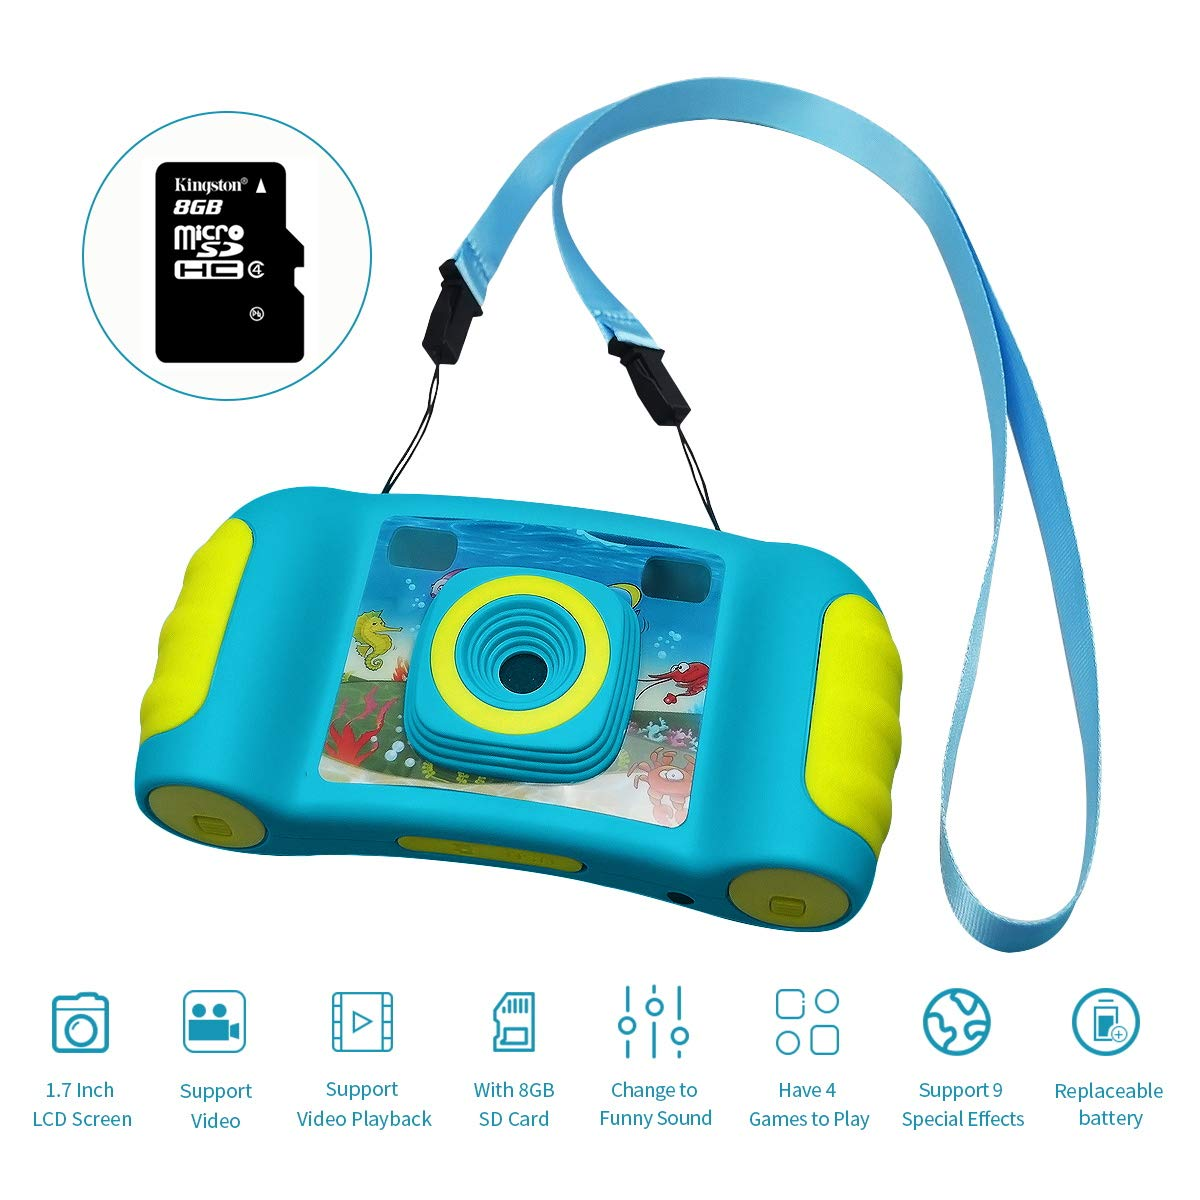 HankeRobotics Kids Digital Camera, with 8GB Micro SD Card, Kids Digital Photo/Video Camera with 4X Zoom, 1.7 Inch Screen Screen Action Camera Camcorder for Children Boys Girls Birthday Gift,Blue